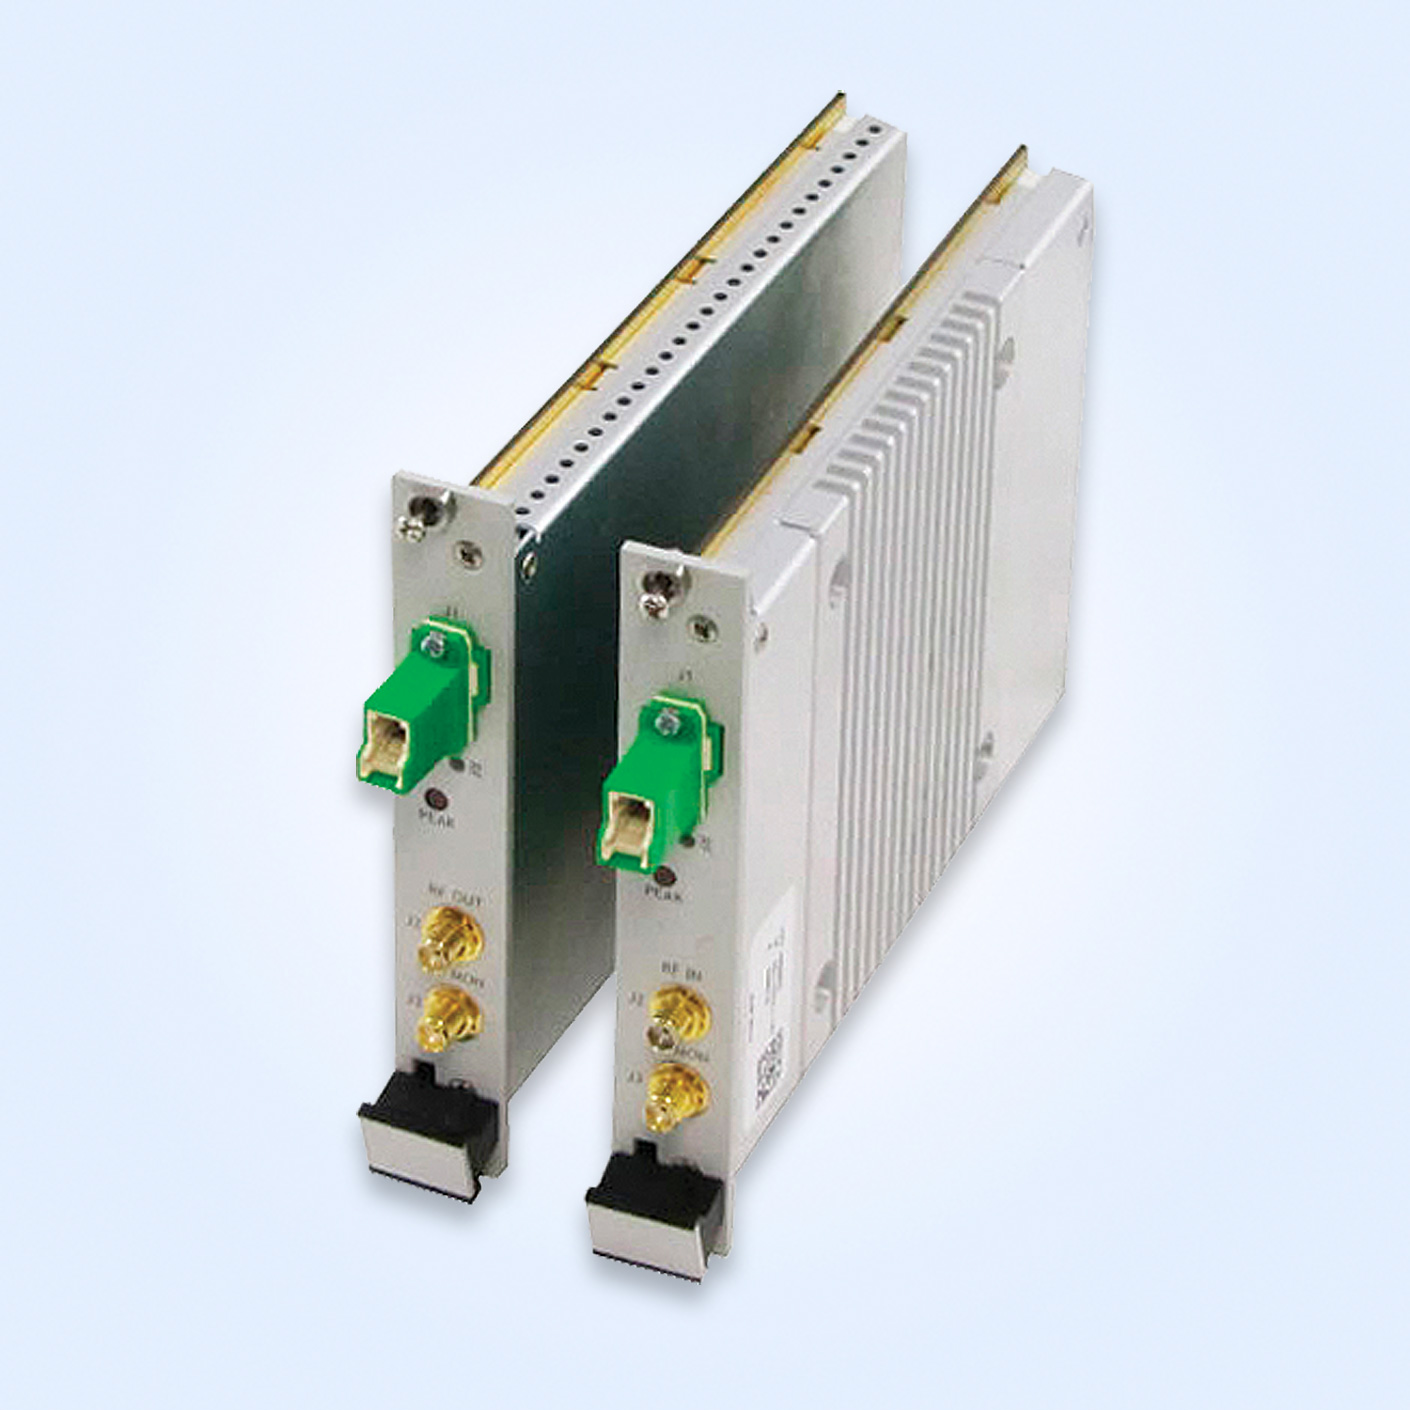 Optiva Platform Rf Microwave Fiber Optic Transport System 1 Mhz Cable With Audio Transmission Electronic Circuits Next